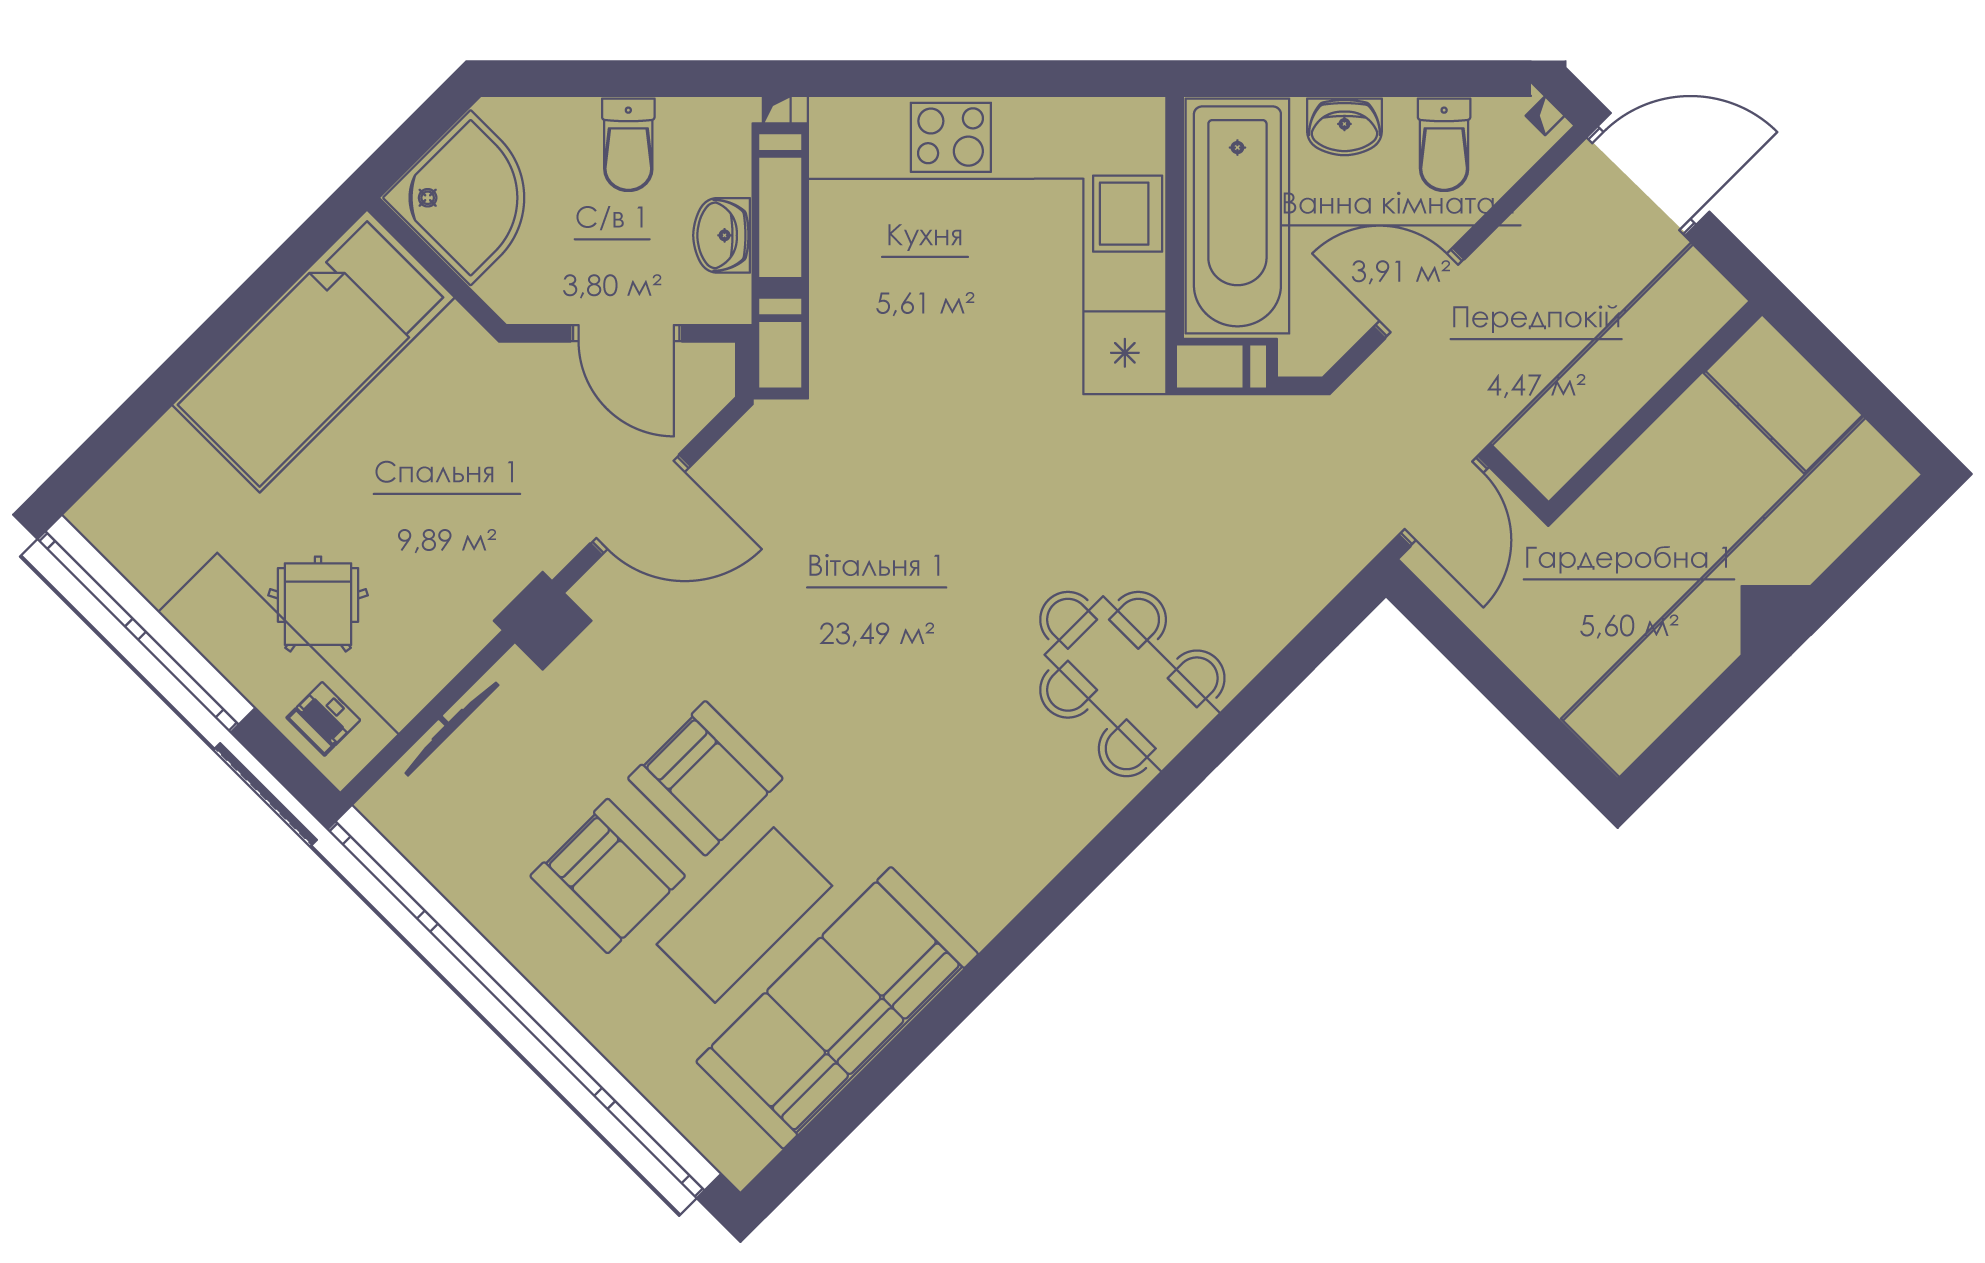 Apartment layout KV_105_2b_1_1_4-1